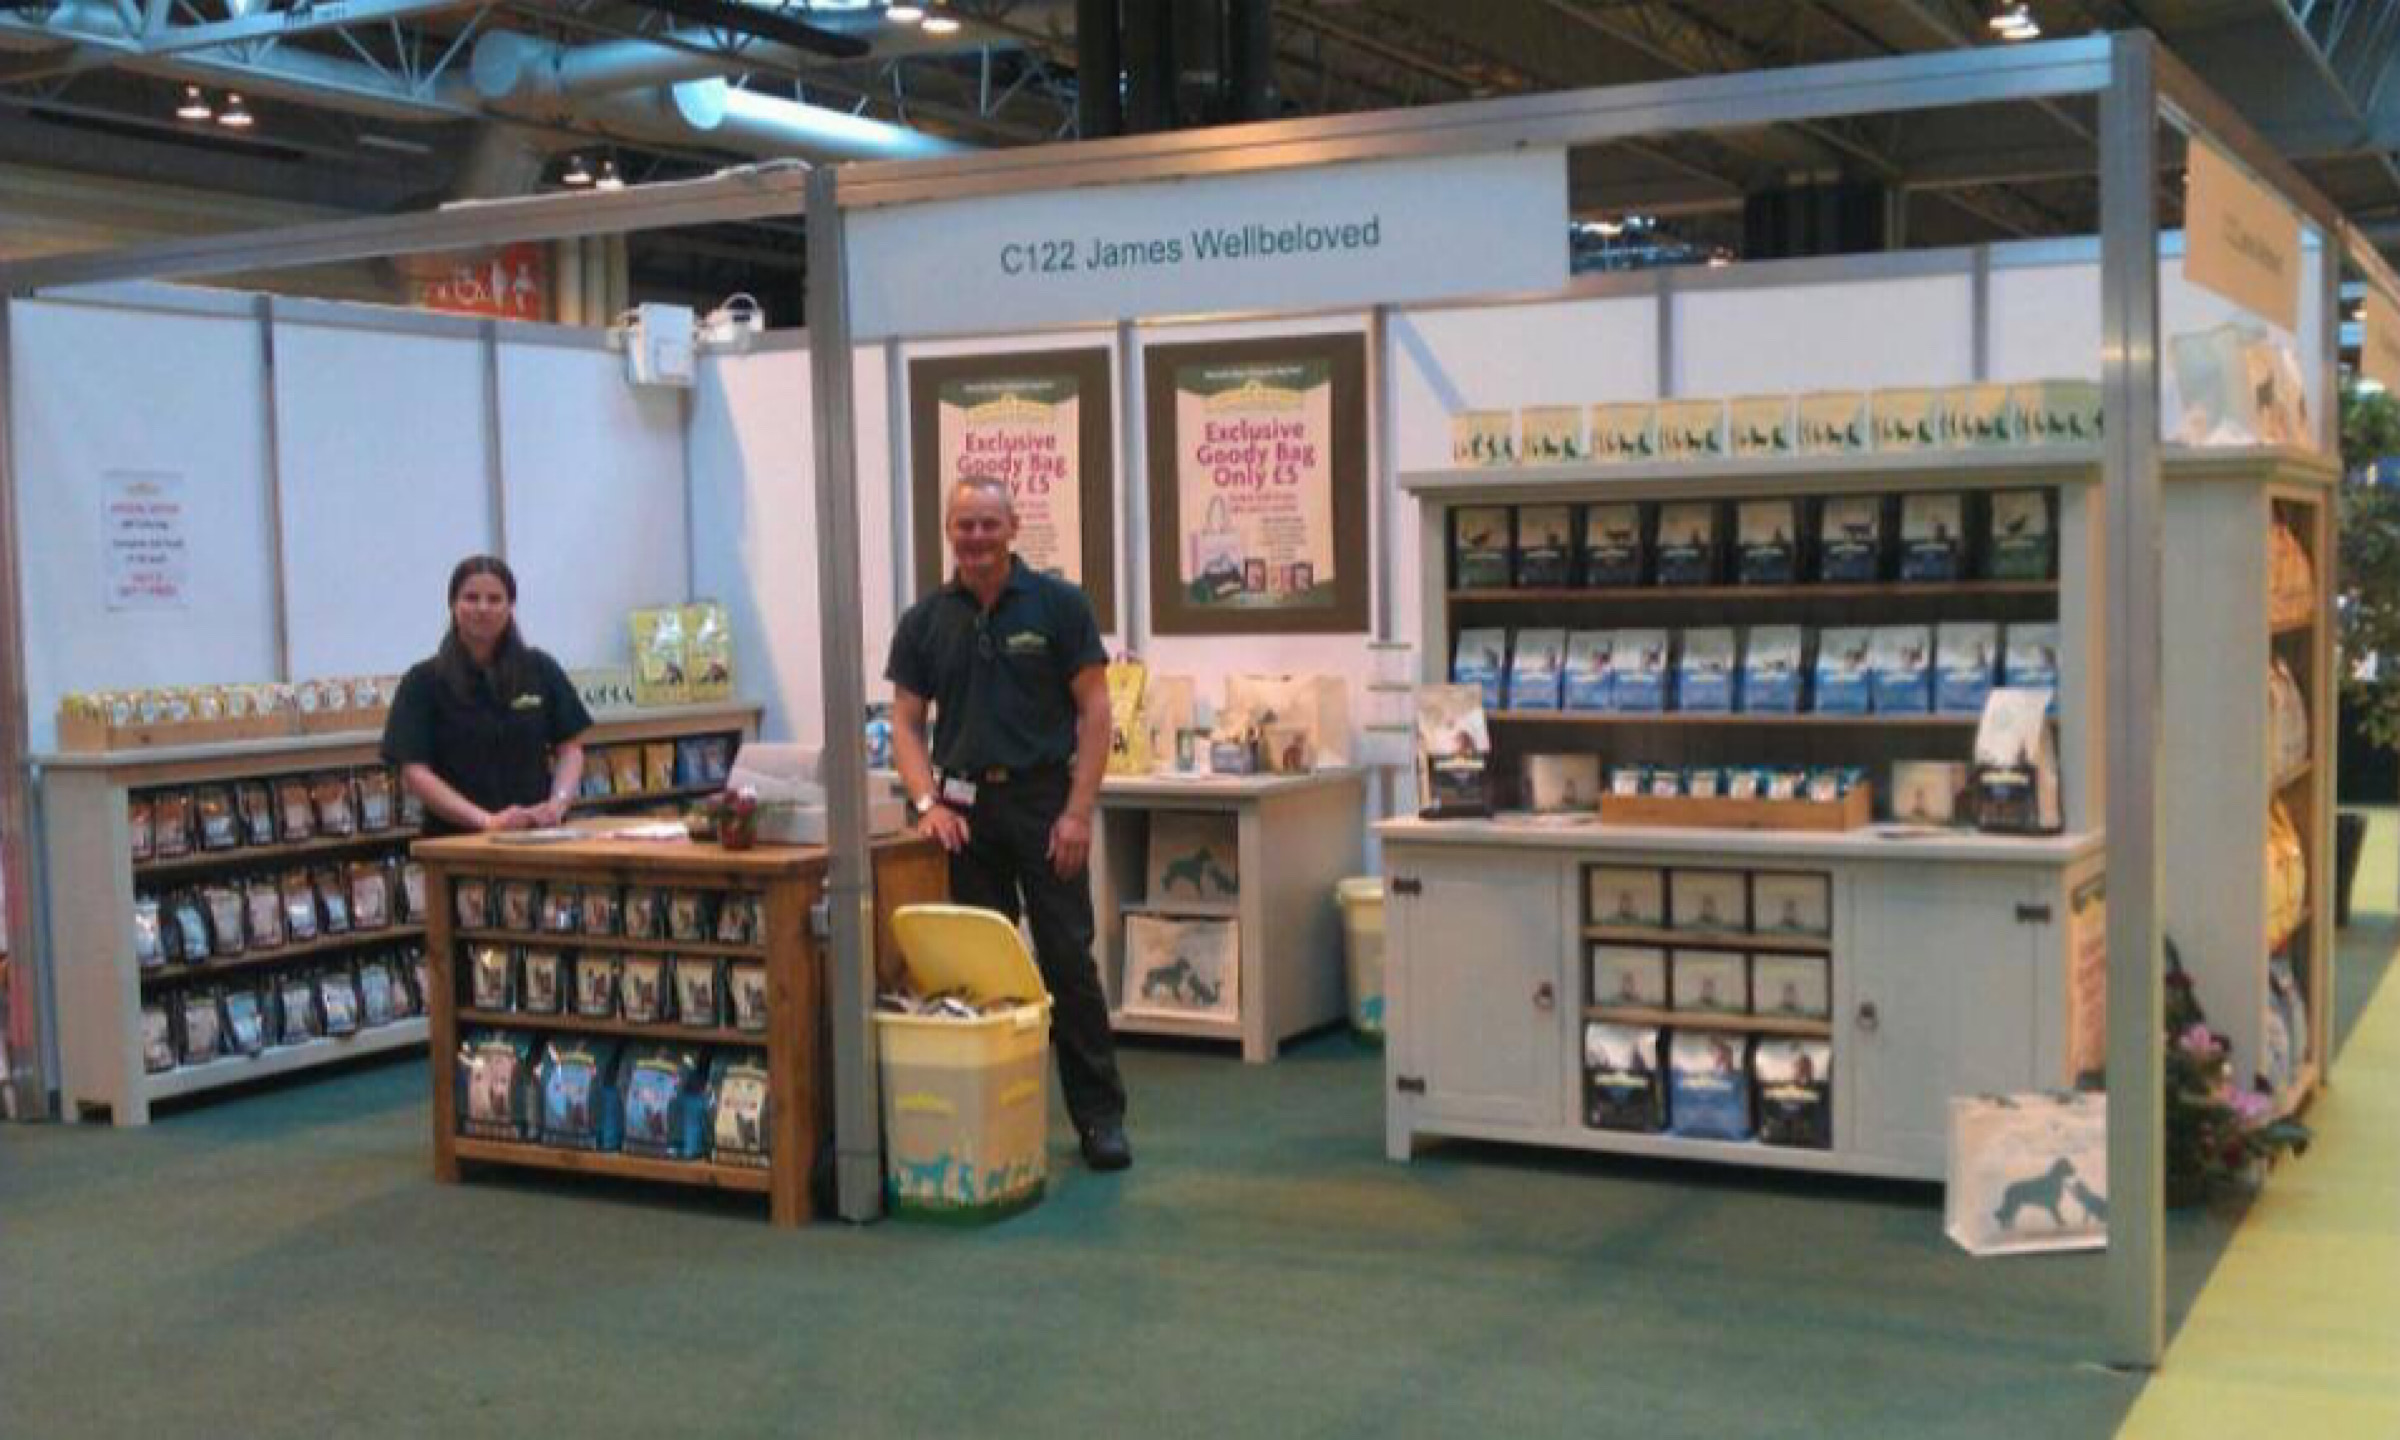 Contract exhibition services exhibition stands shell scheme stands